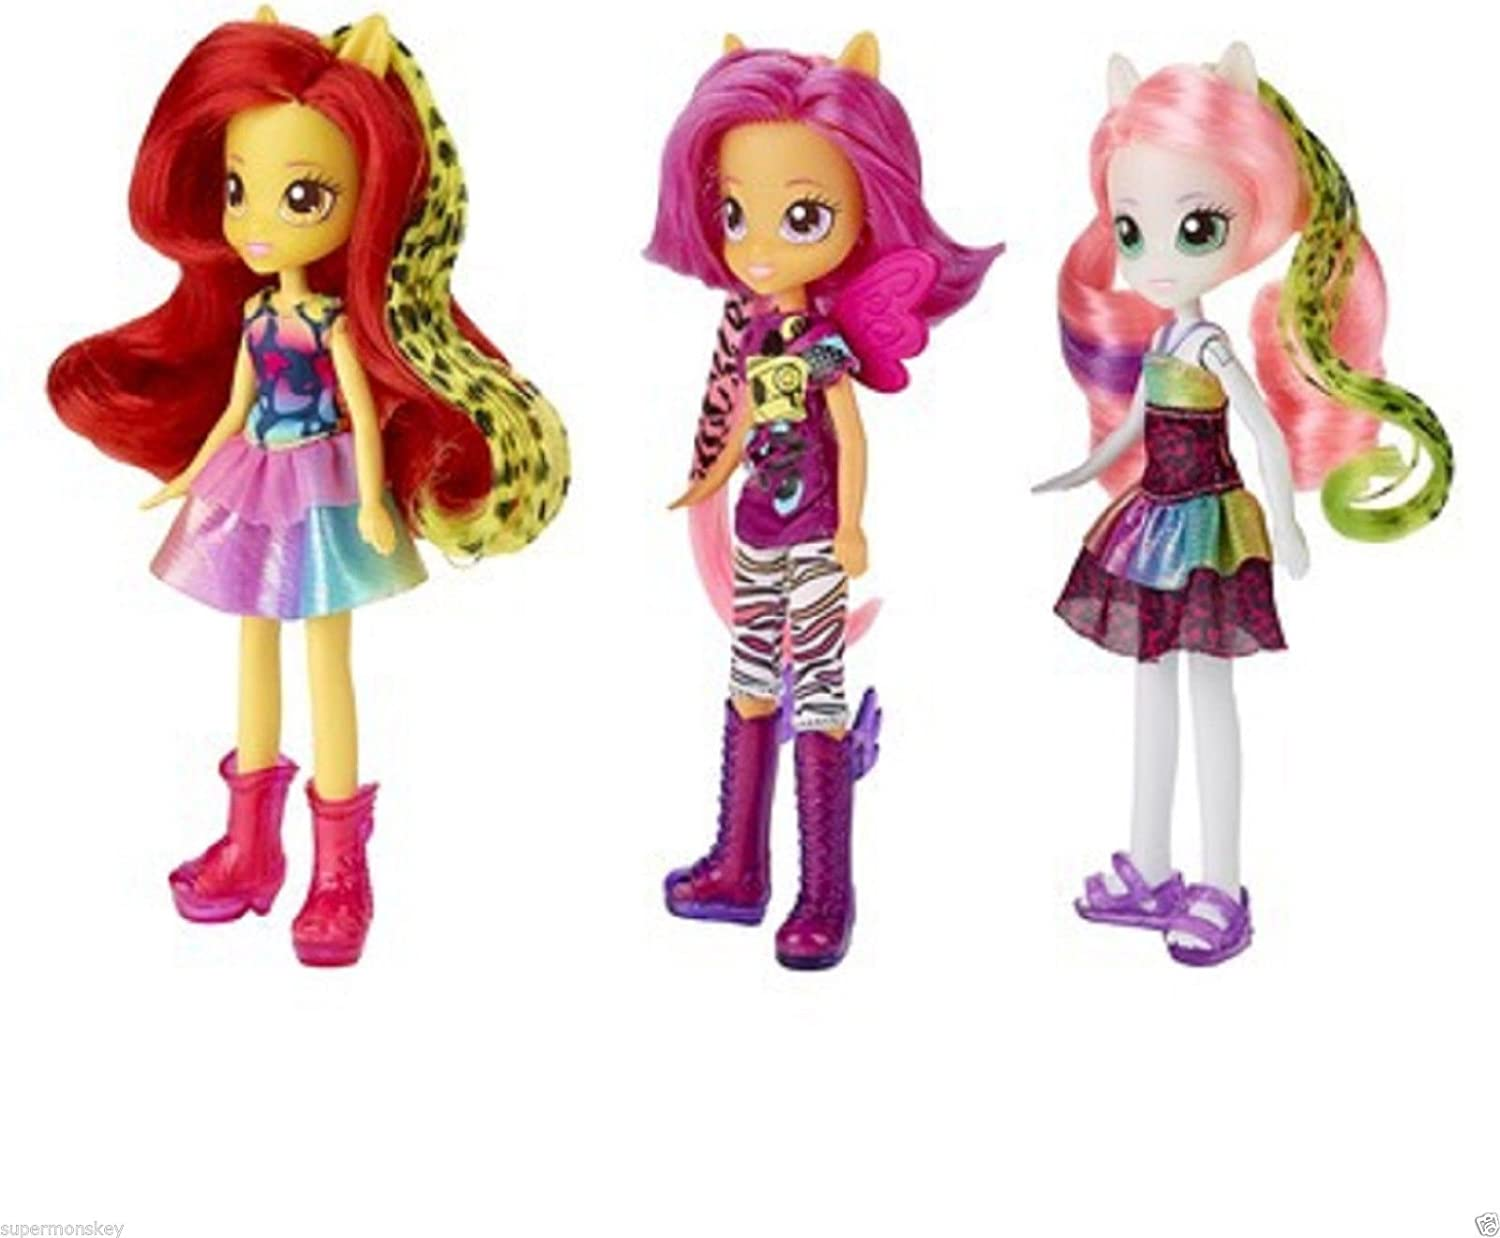 My Little Pony Equestria Girls Sweetie Belle Scootaloo And Apple Bloom Dolls 3 Pack Adorable Dolls Little Girls Will Love Colorful And Stylish Perfect Christmas Gift For Kids Collector Items With Accesssory Pieces High quality scootaloo gifts and merchandise. my little pony equestria girls sweetie